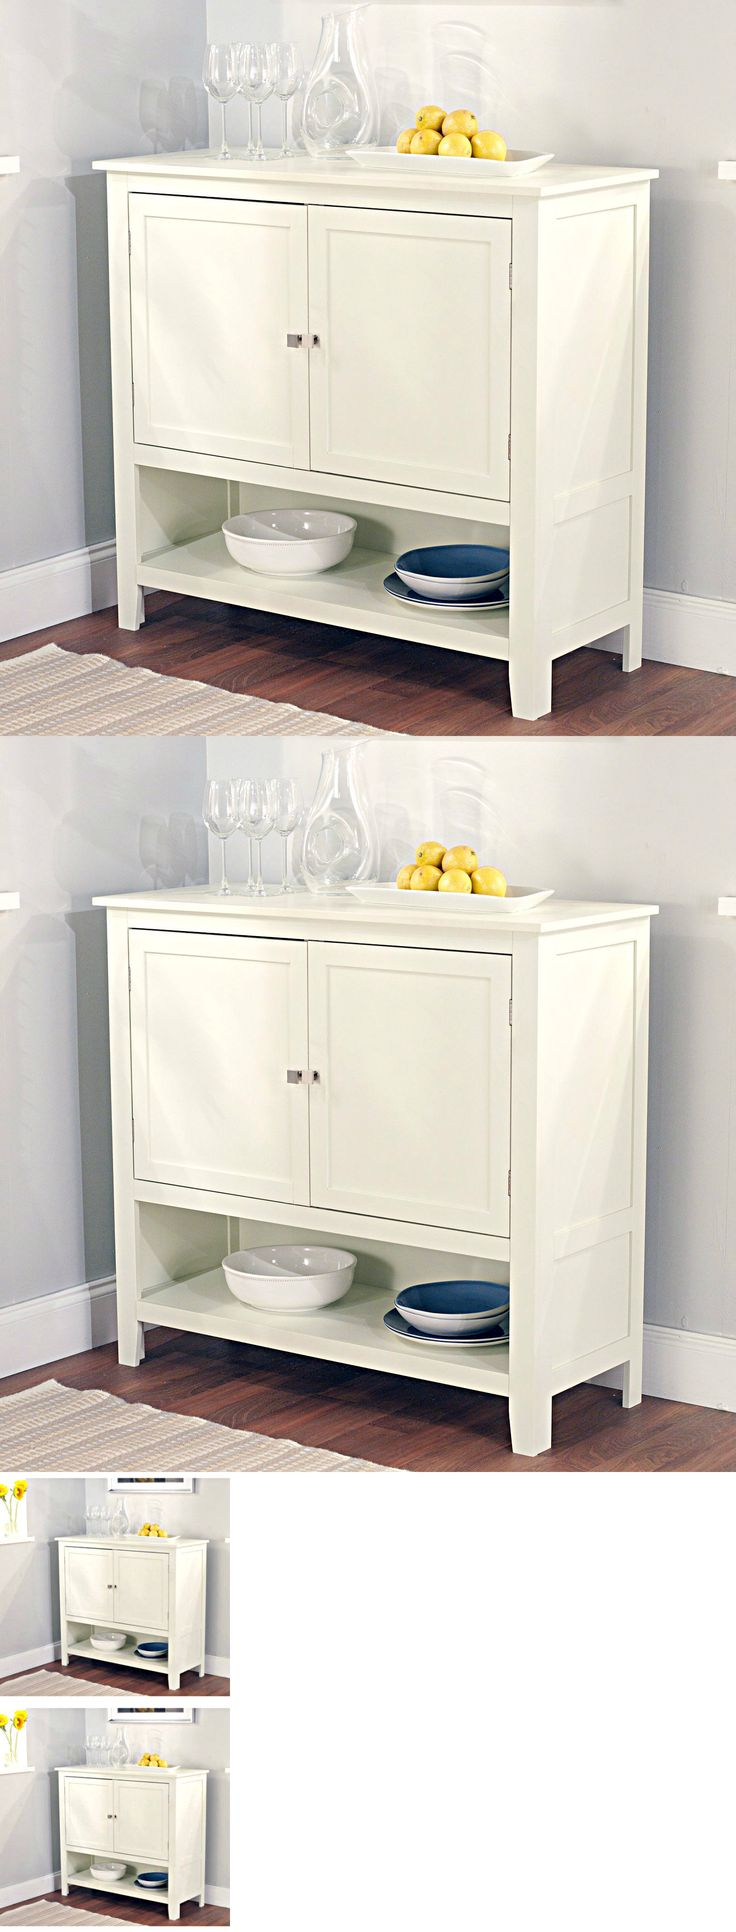 Sideboards and Buffets 183322: Small Kitchen Cabinet Buffet Server Table Sideboard Dining Room Doors Wood White -> BUY IT NOW ONLY: $168.99 on eBay!